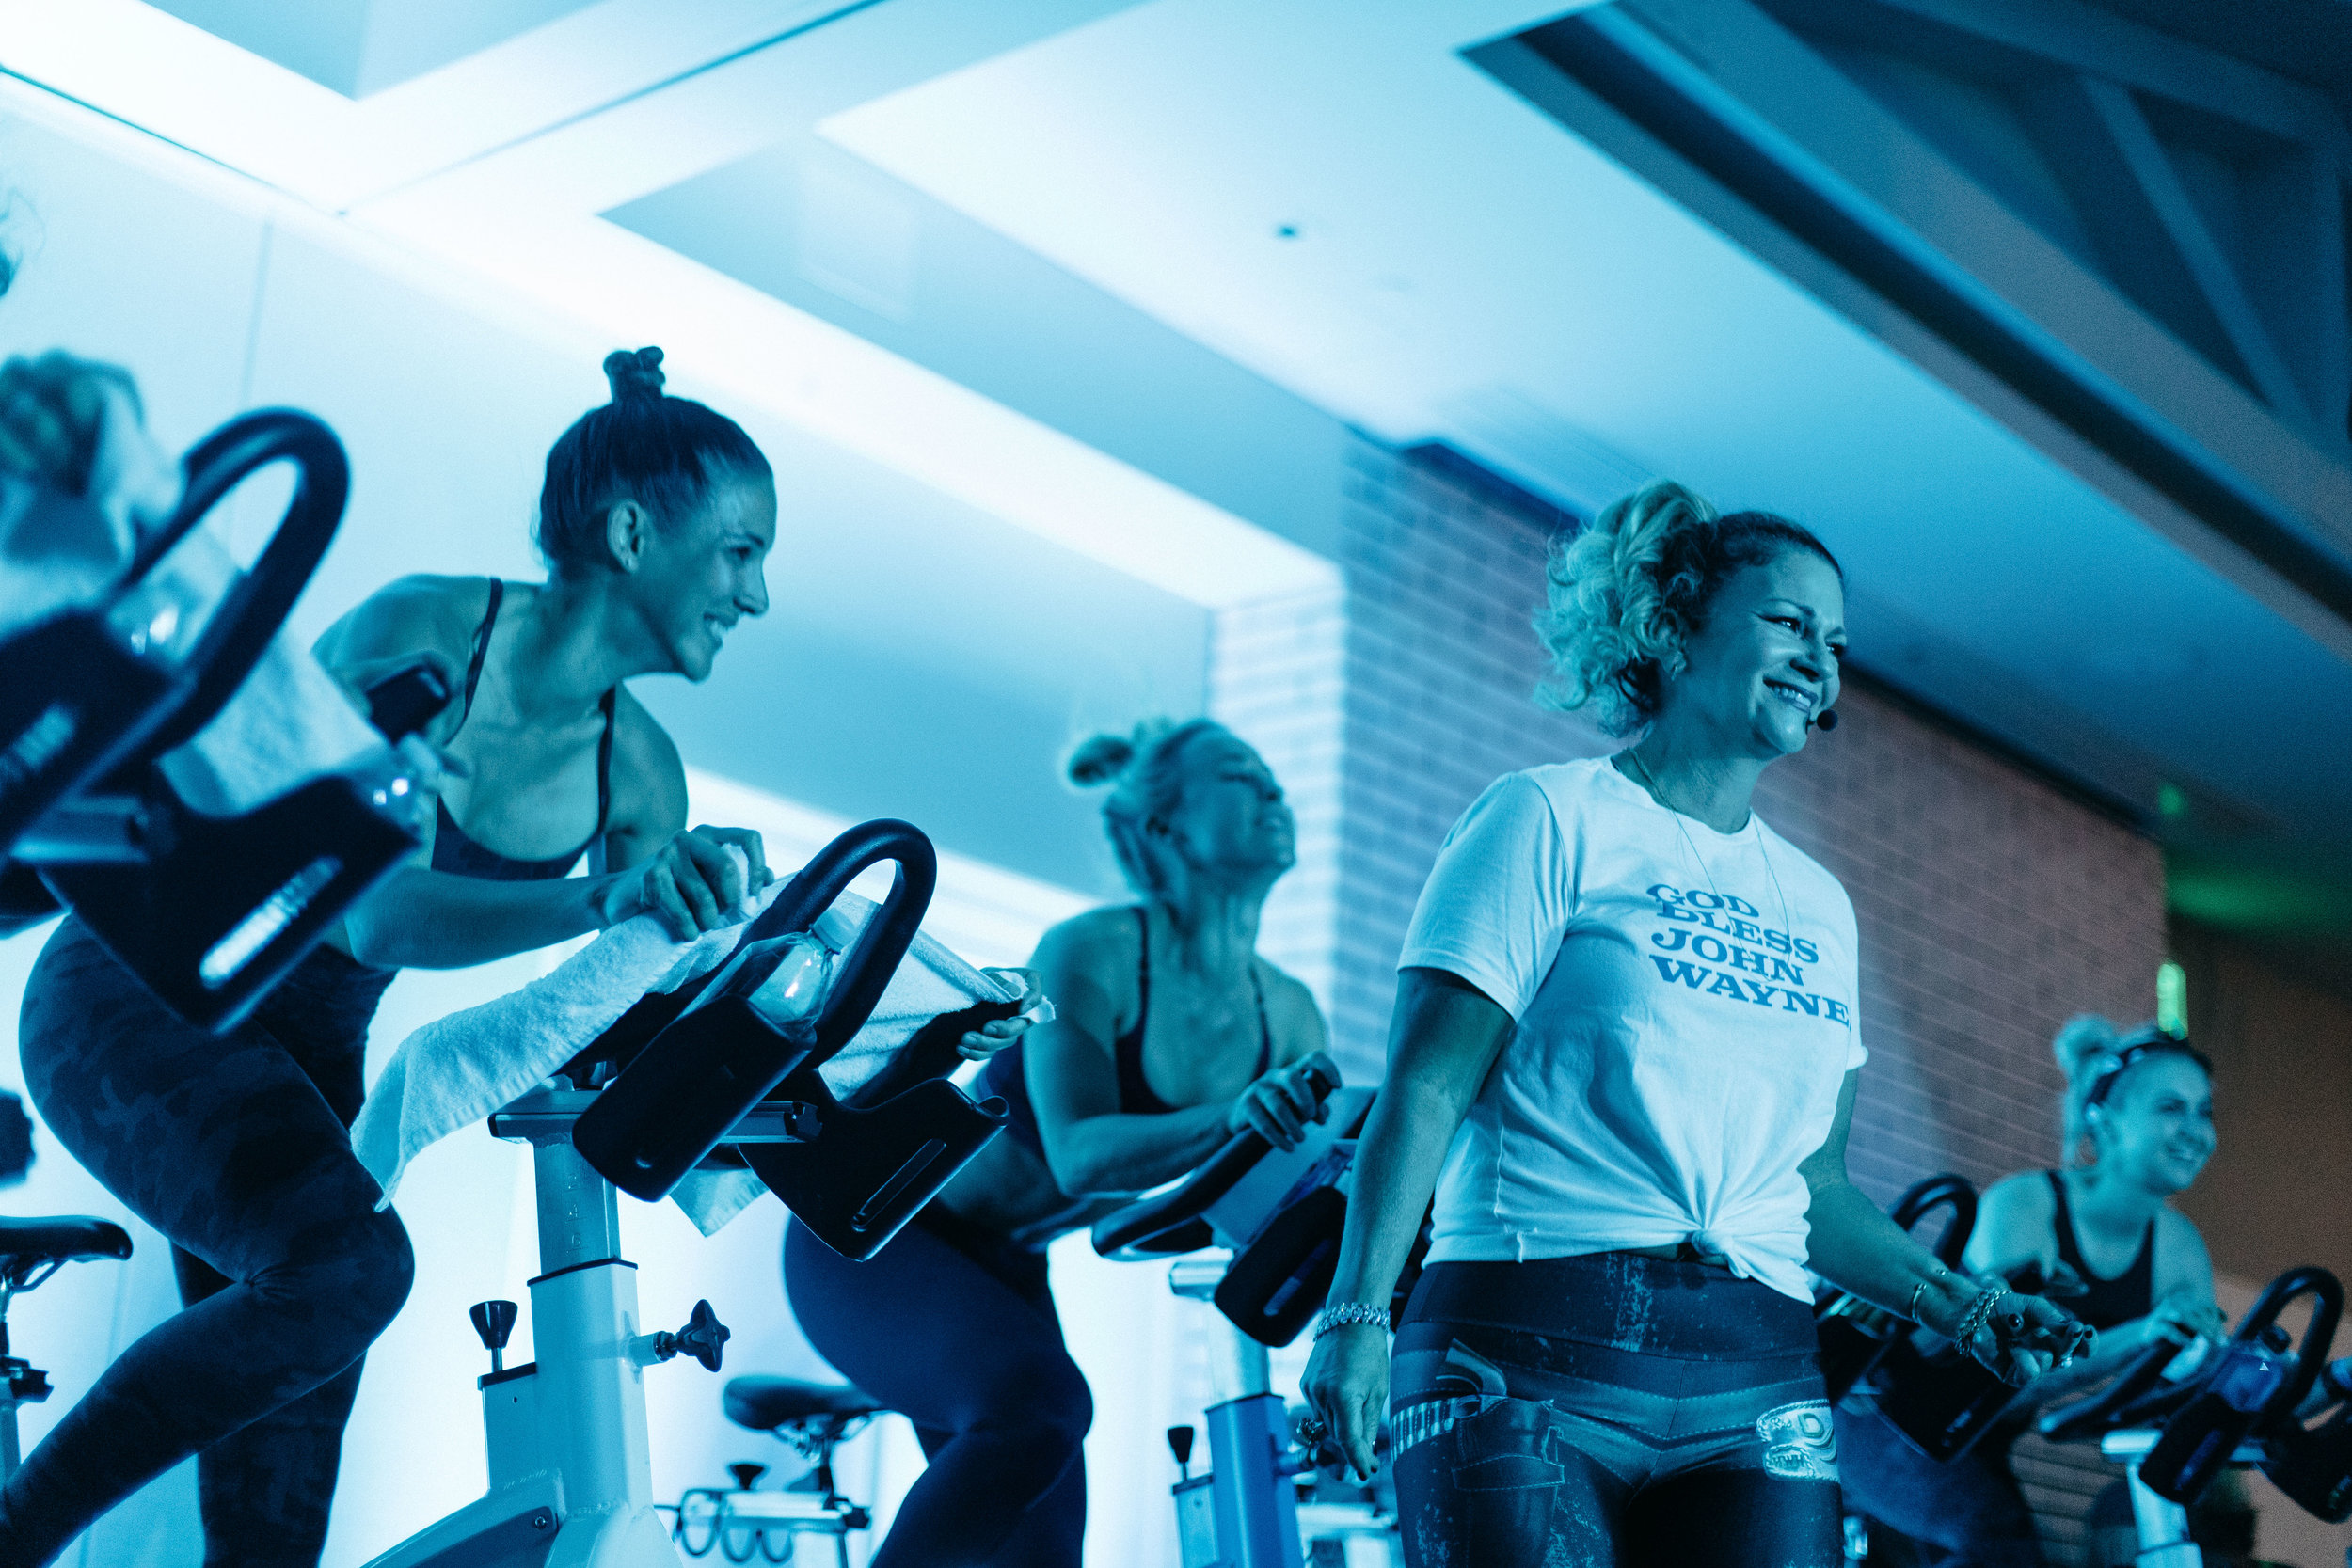 Energetic choreography and enthusiasm from the GritCycle instructors kept riders in motion during a three-hour cycle class to raise funds for the John Wayne Cancer Foundation.